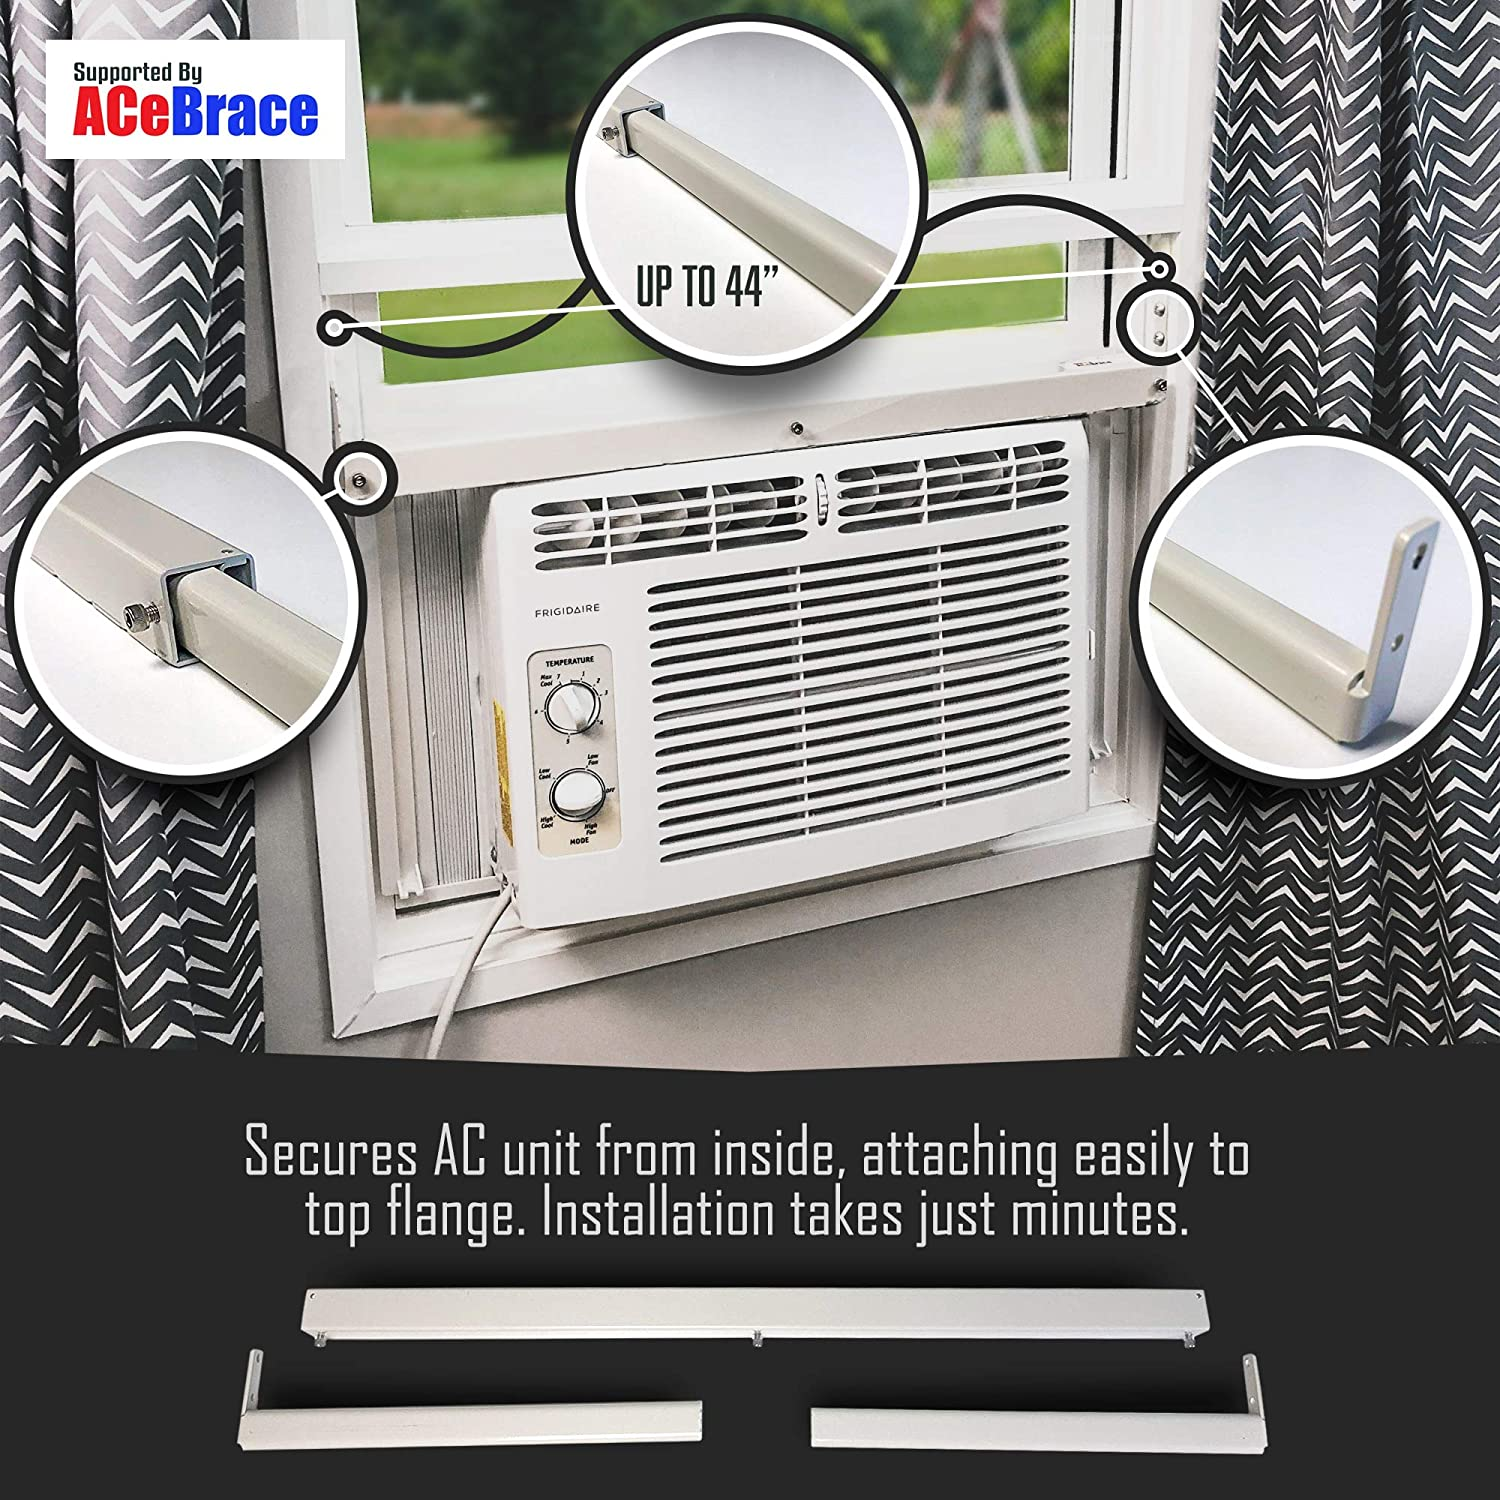 ACeBrace Air Conditioner Support for standard window Air Conditioners - Universal AC Window Bracket- Air Conditioner Support - Window Guard and Air Conditioner Support. MADE IN THE USA